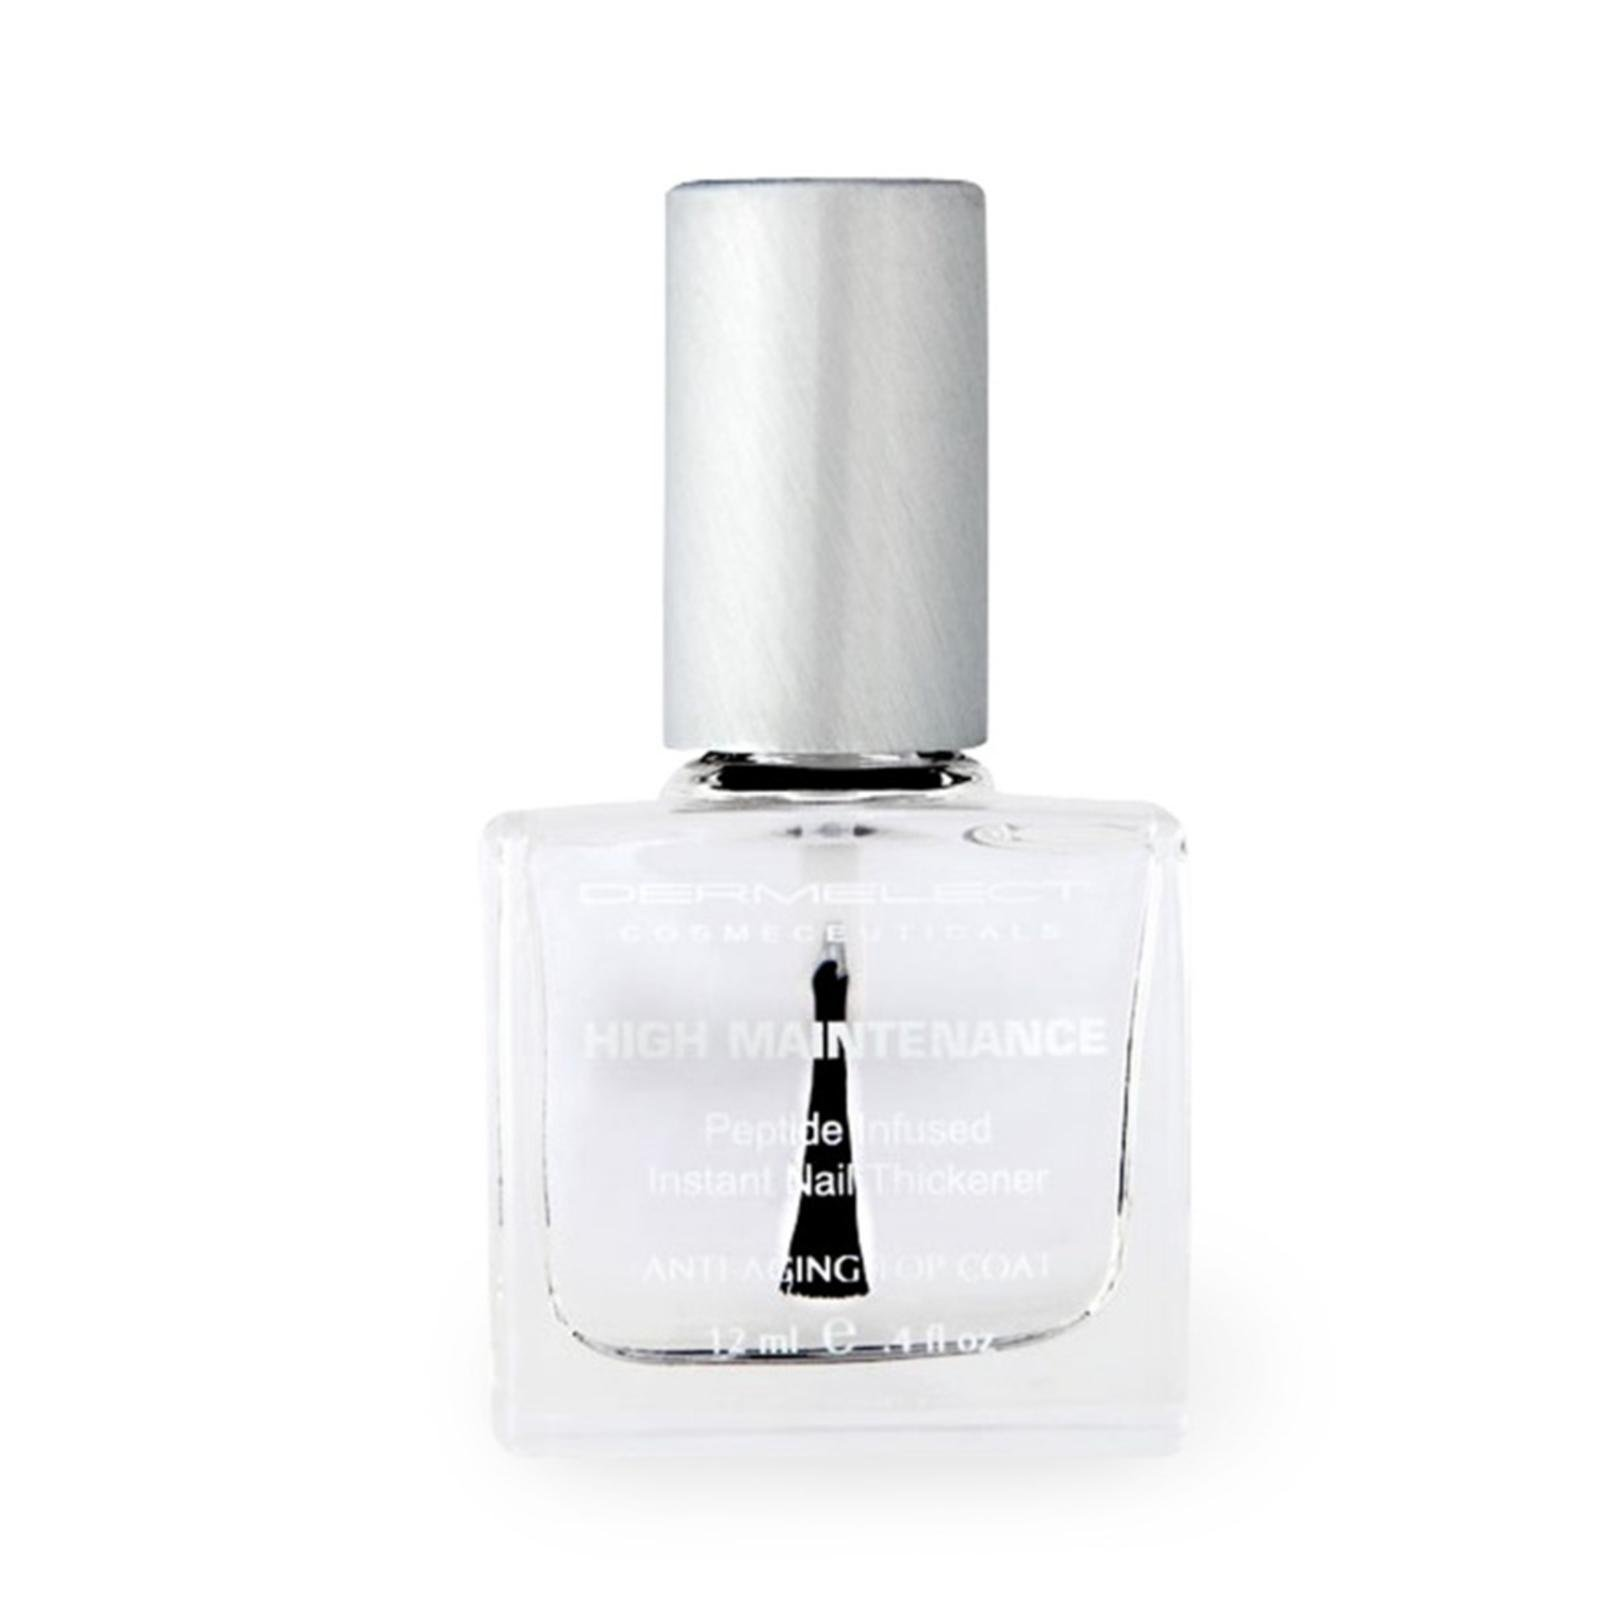 Amazon.com : Dermelect Cosmeceuticals Launchpad Nail Strengthener ...